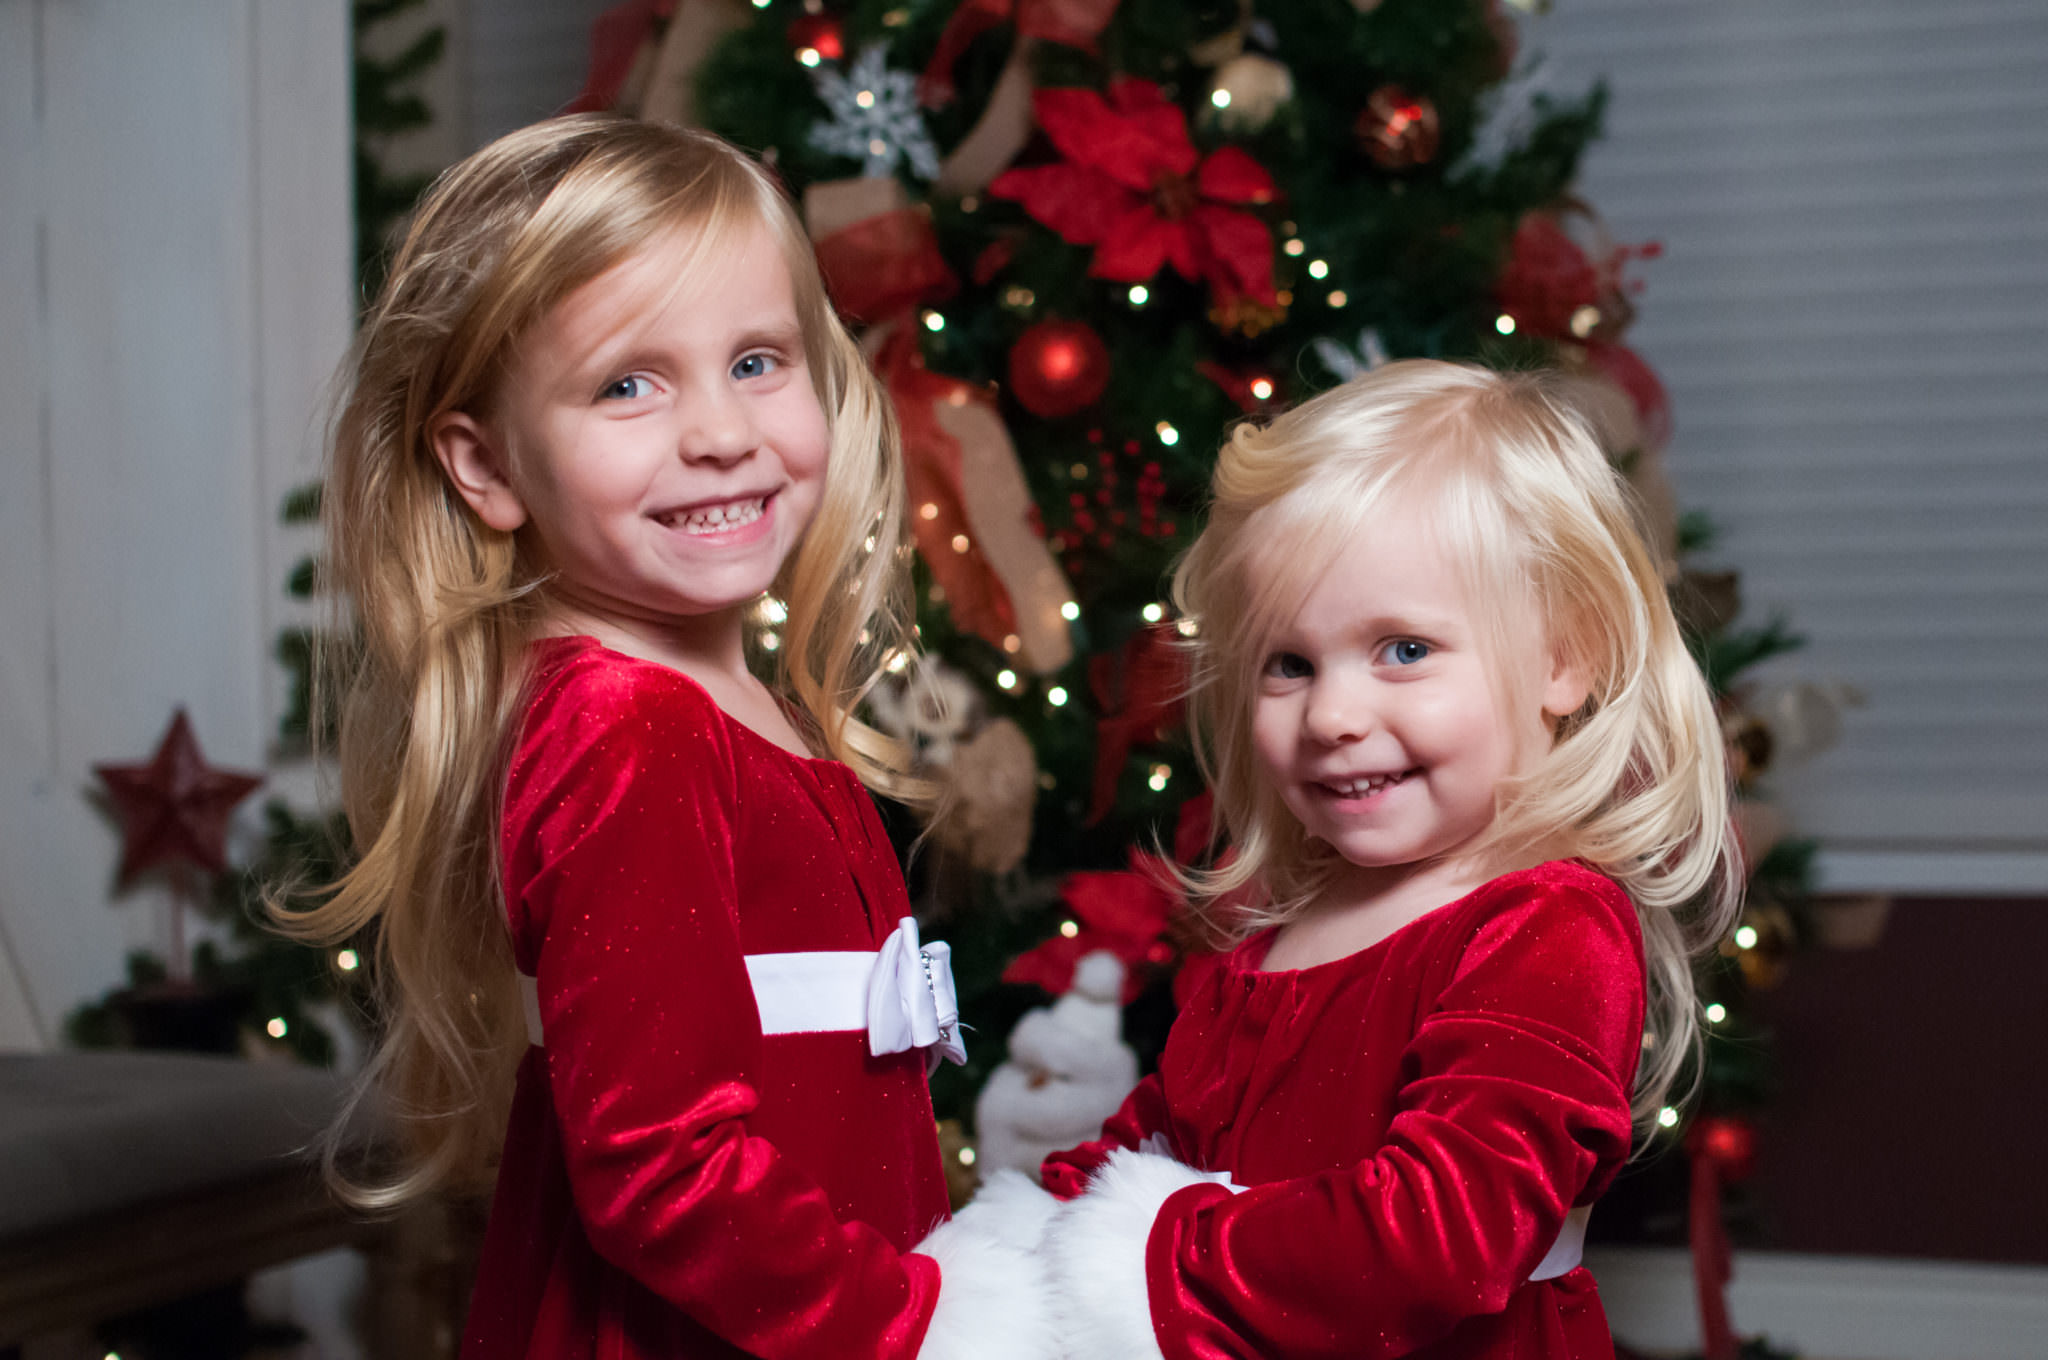 Sisters in Christmas dresses, Northville Child Photographer, Christmas Mini Sessions